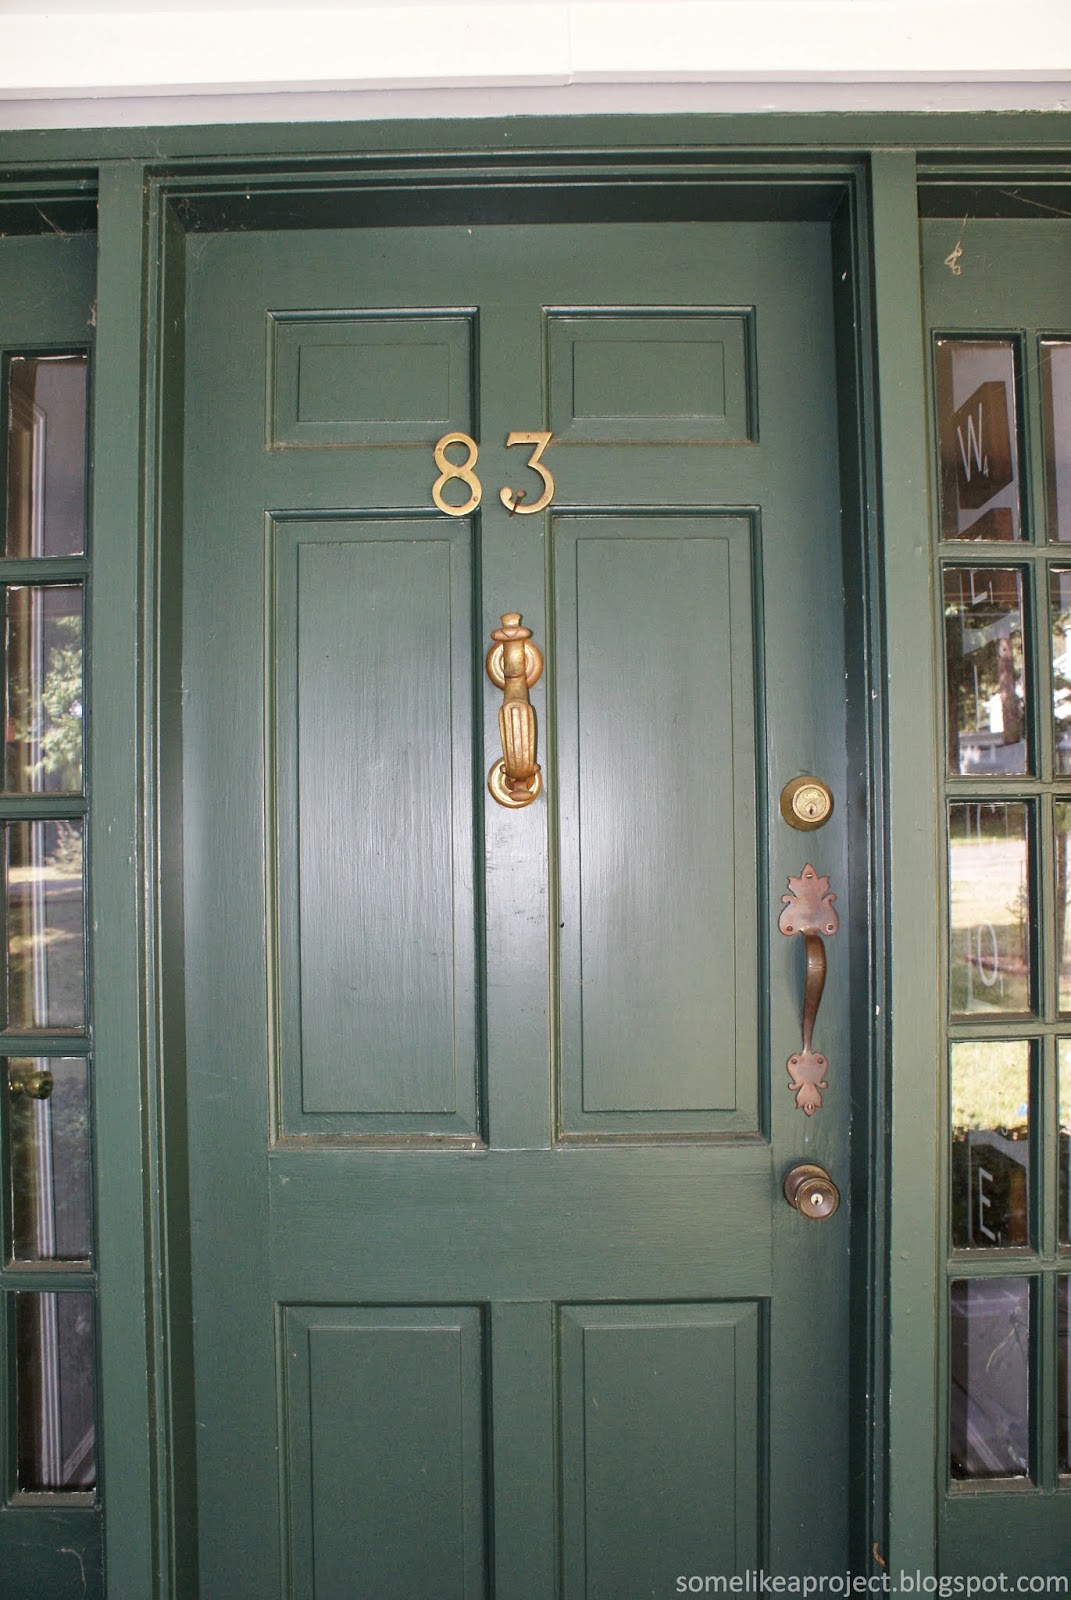 When We Bought The House, The House Numbers Were Mounted On The Front Door.